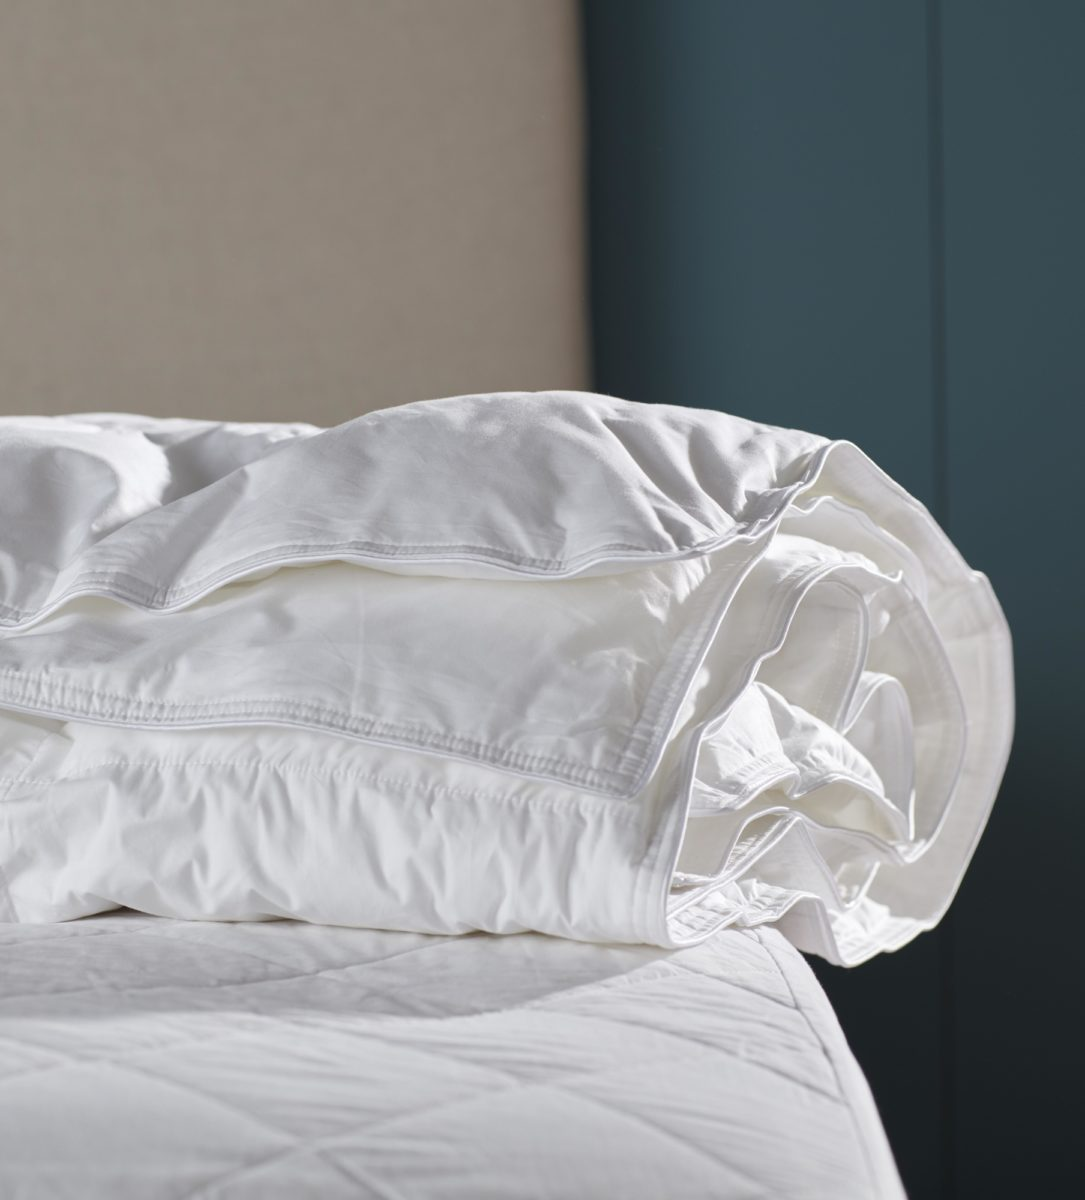 Keep Me Cool Bedding Climarelle 174 Cool With Suprelle 174 Tencel